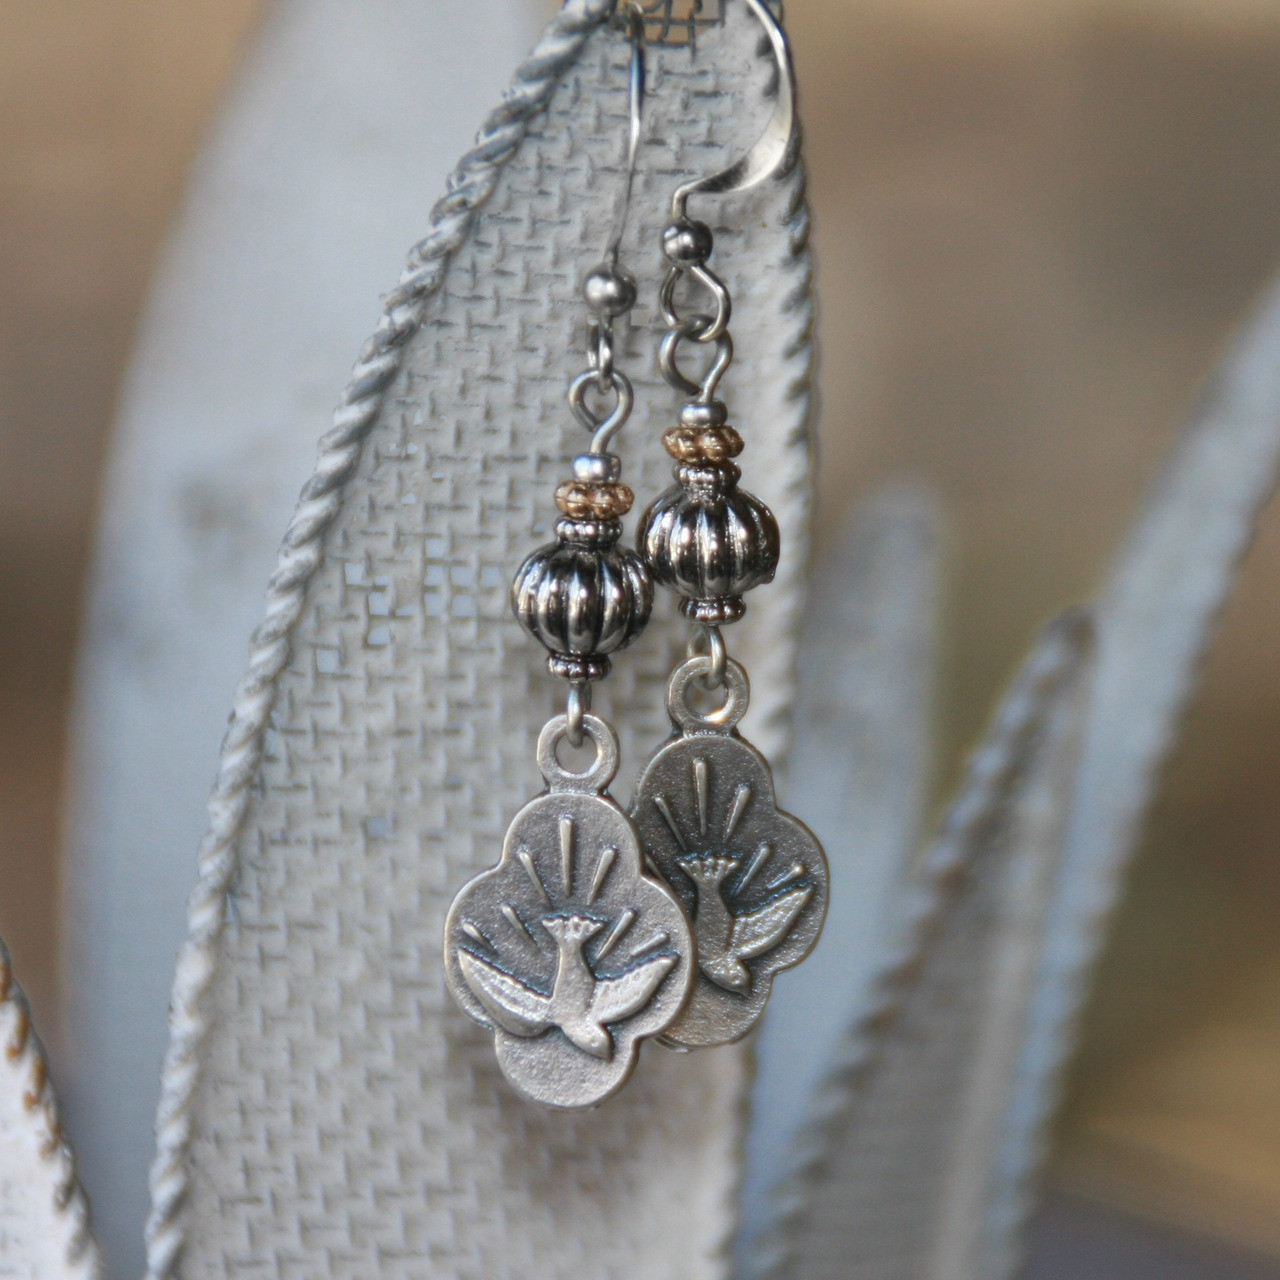 IN-47  Holy Spirit Dove Earrings, I just Love these!